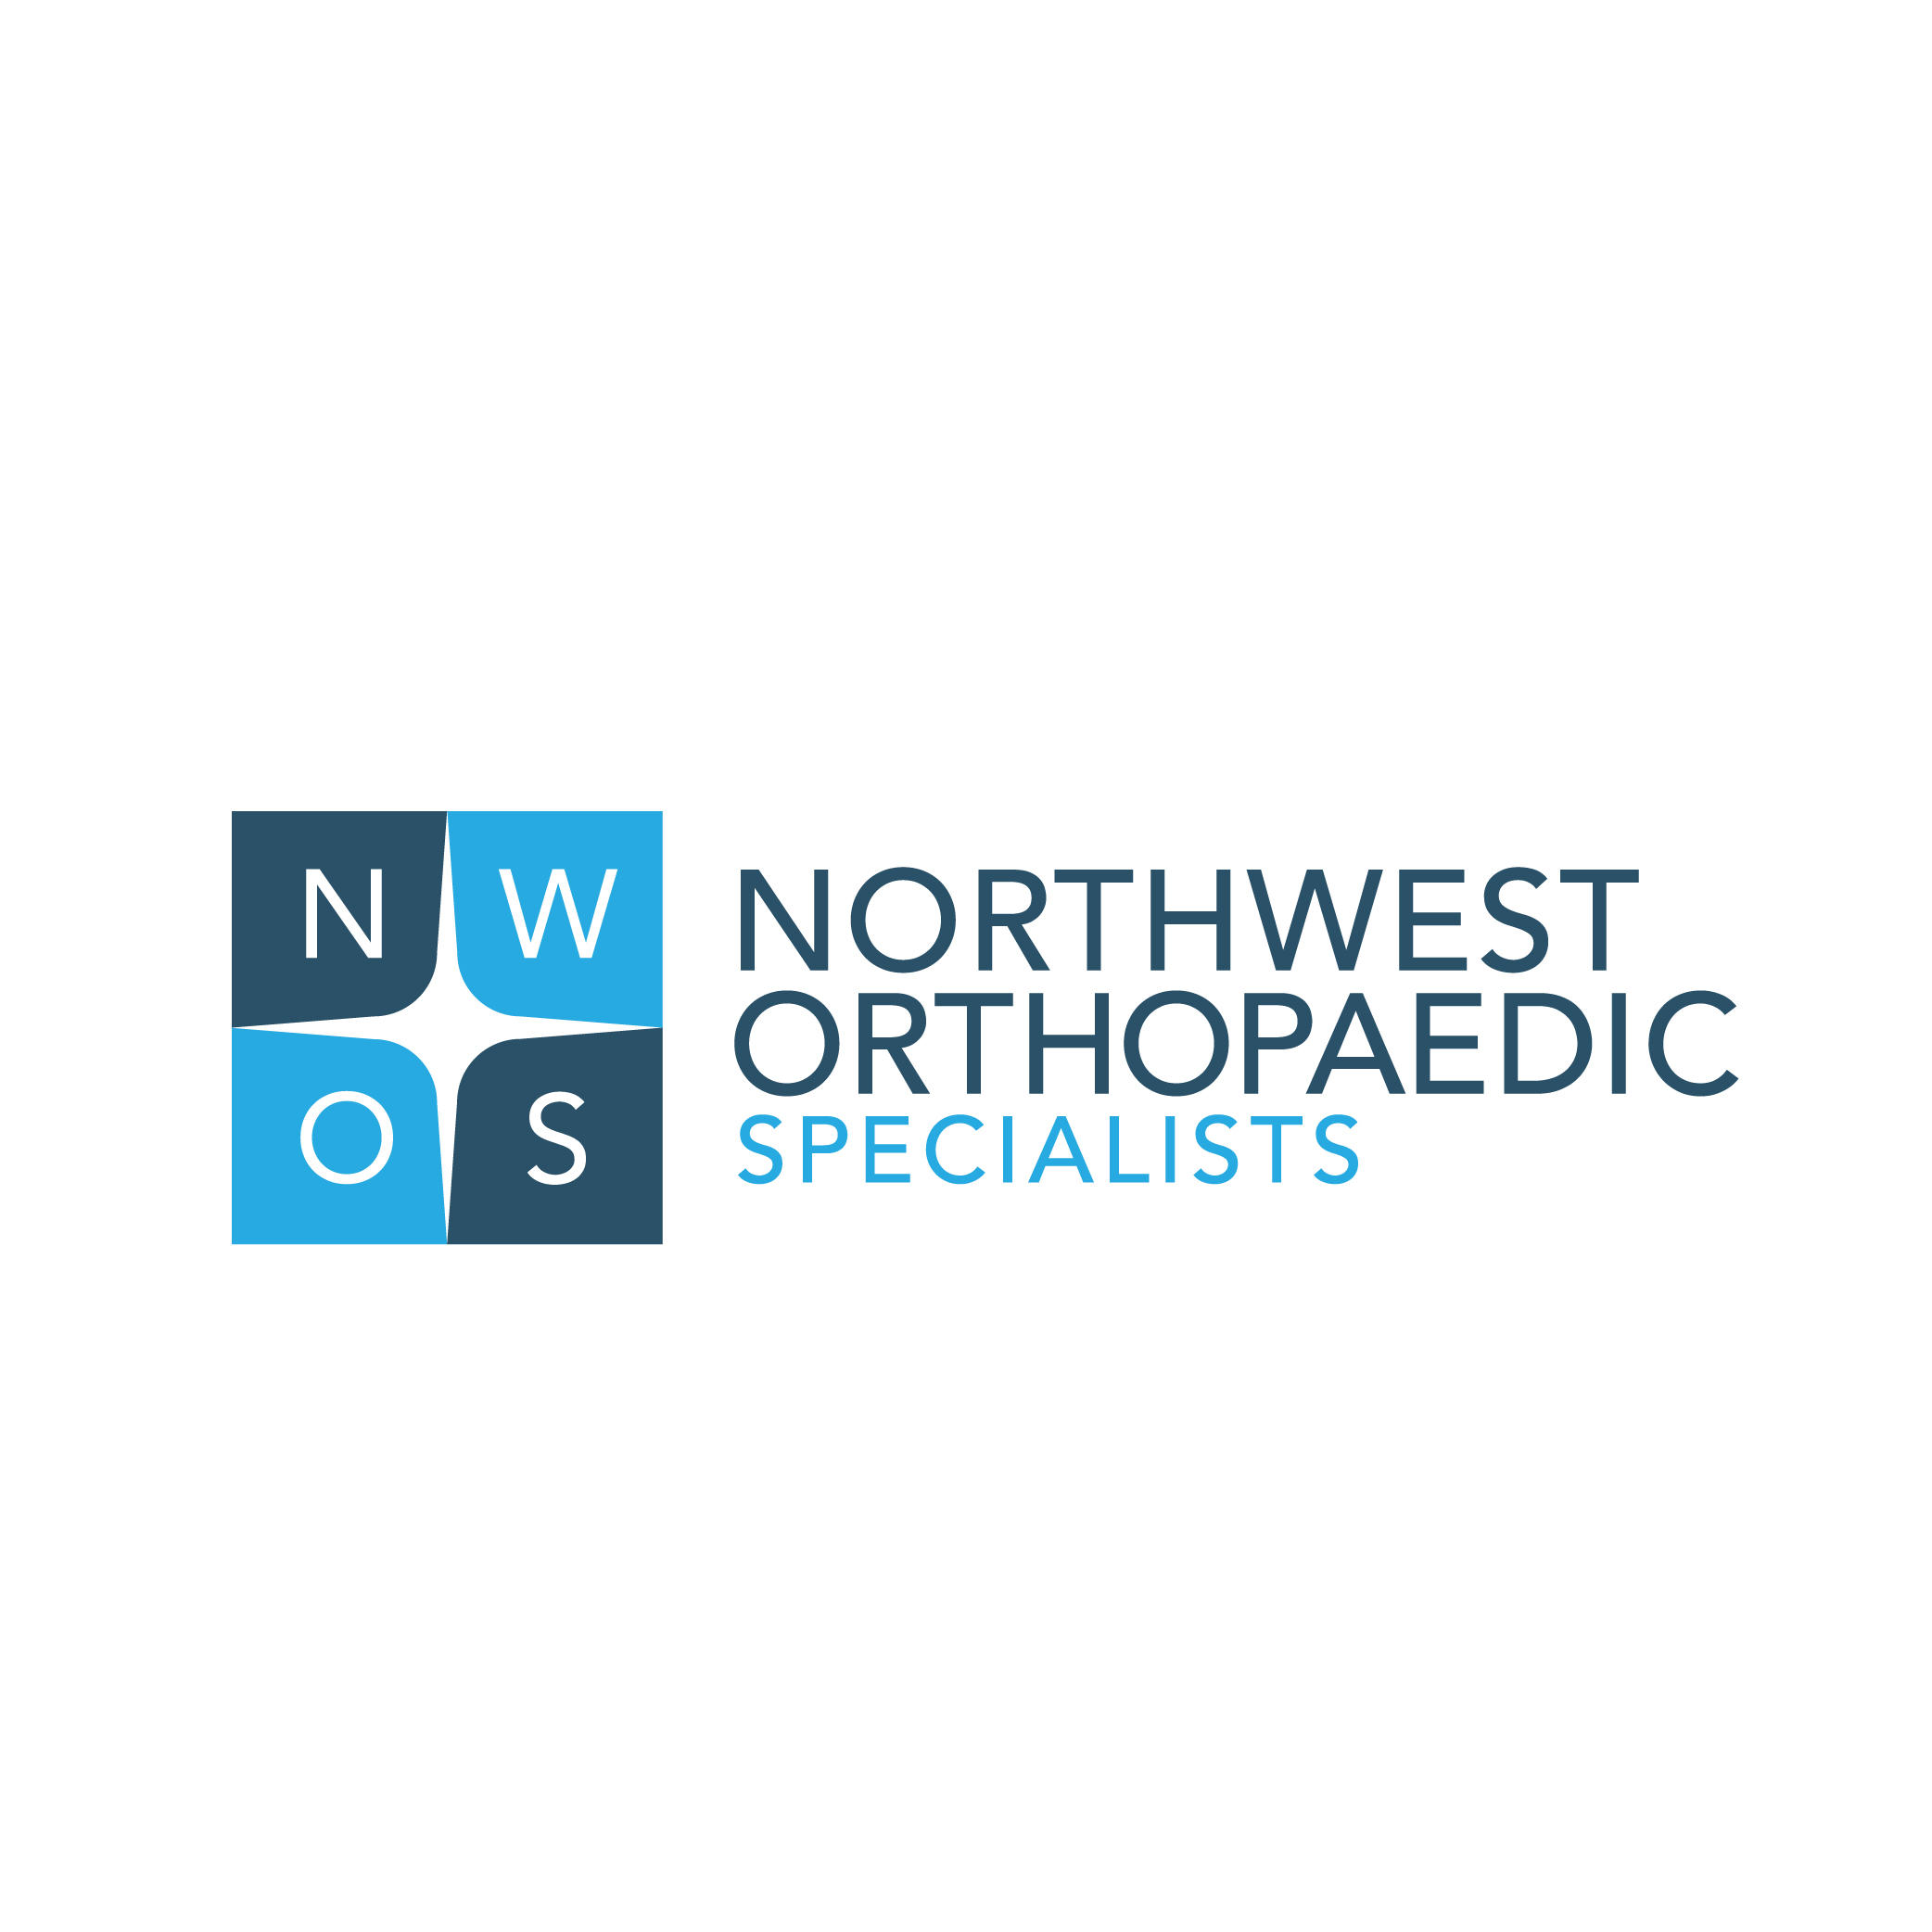 Northwest Orthopaedic Specialists - North Spokane